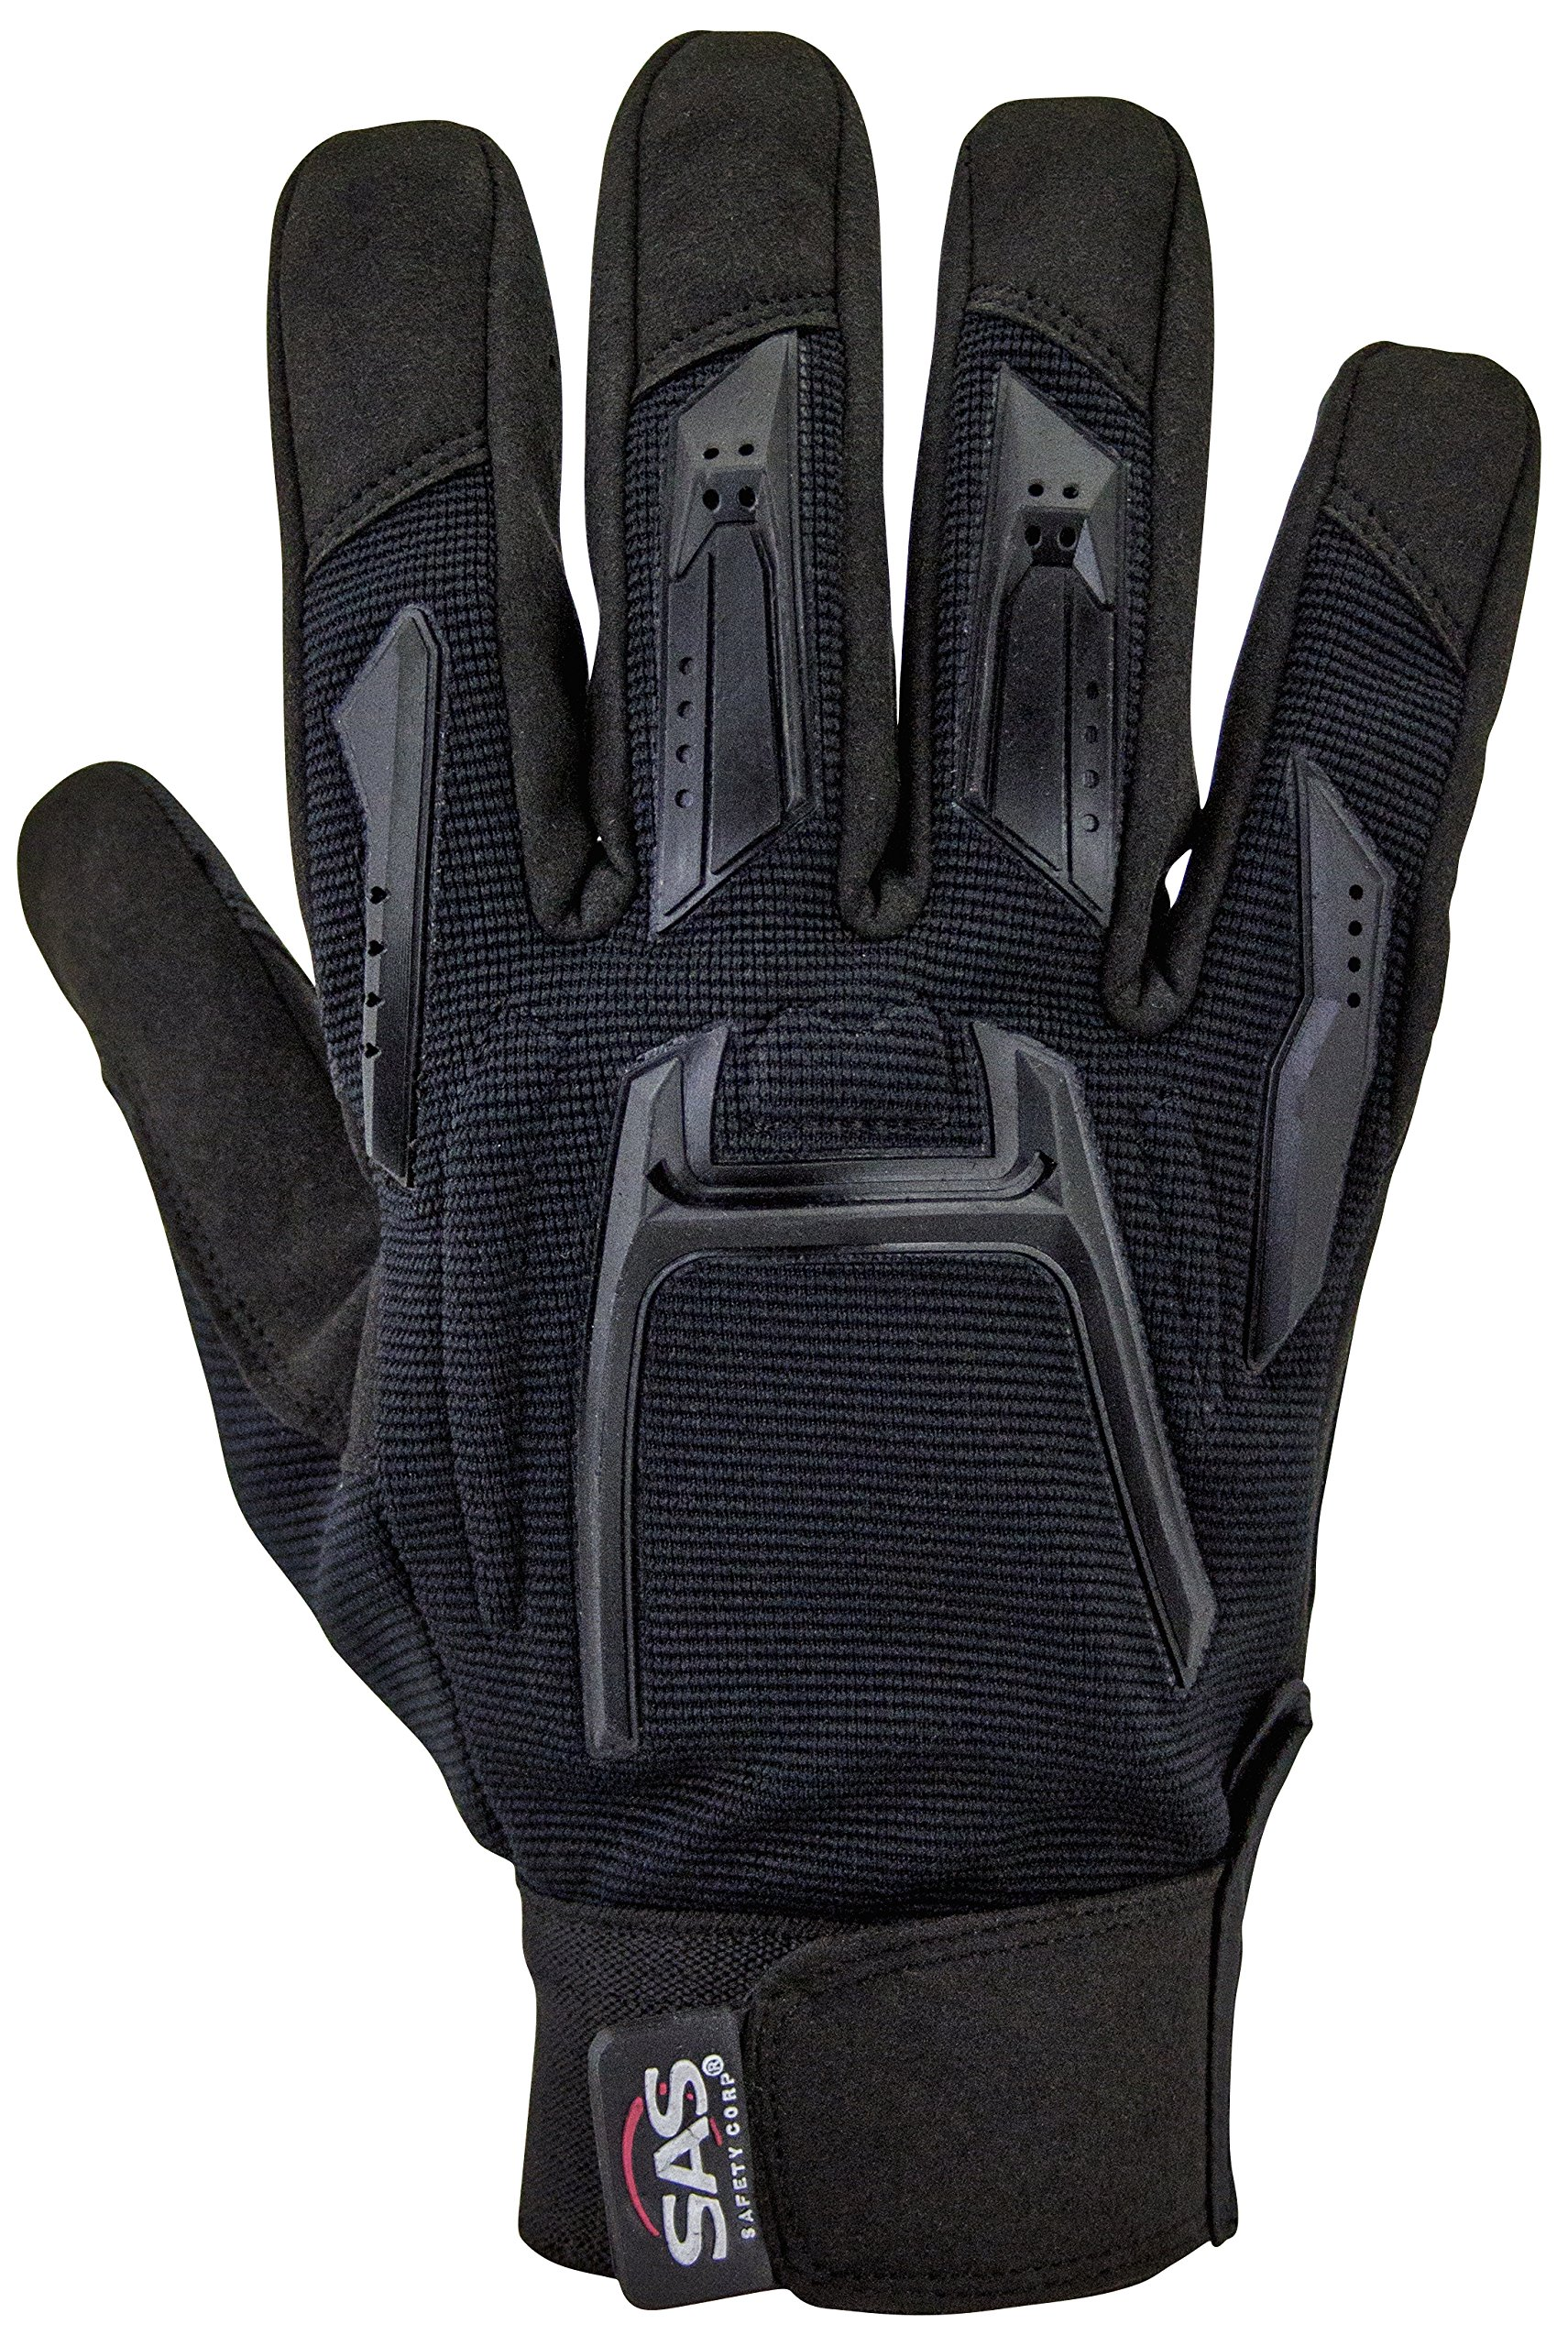 SAS Safety Corp. 6722-24 SAS Safety MX Impact Resistant Grip Palm Glove with Finger Patches, X-Large